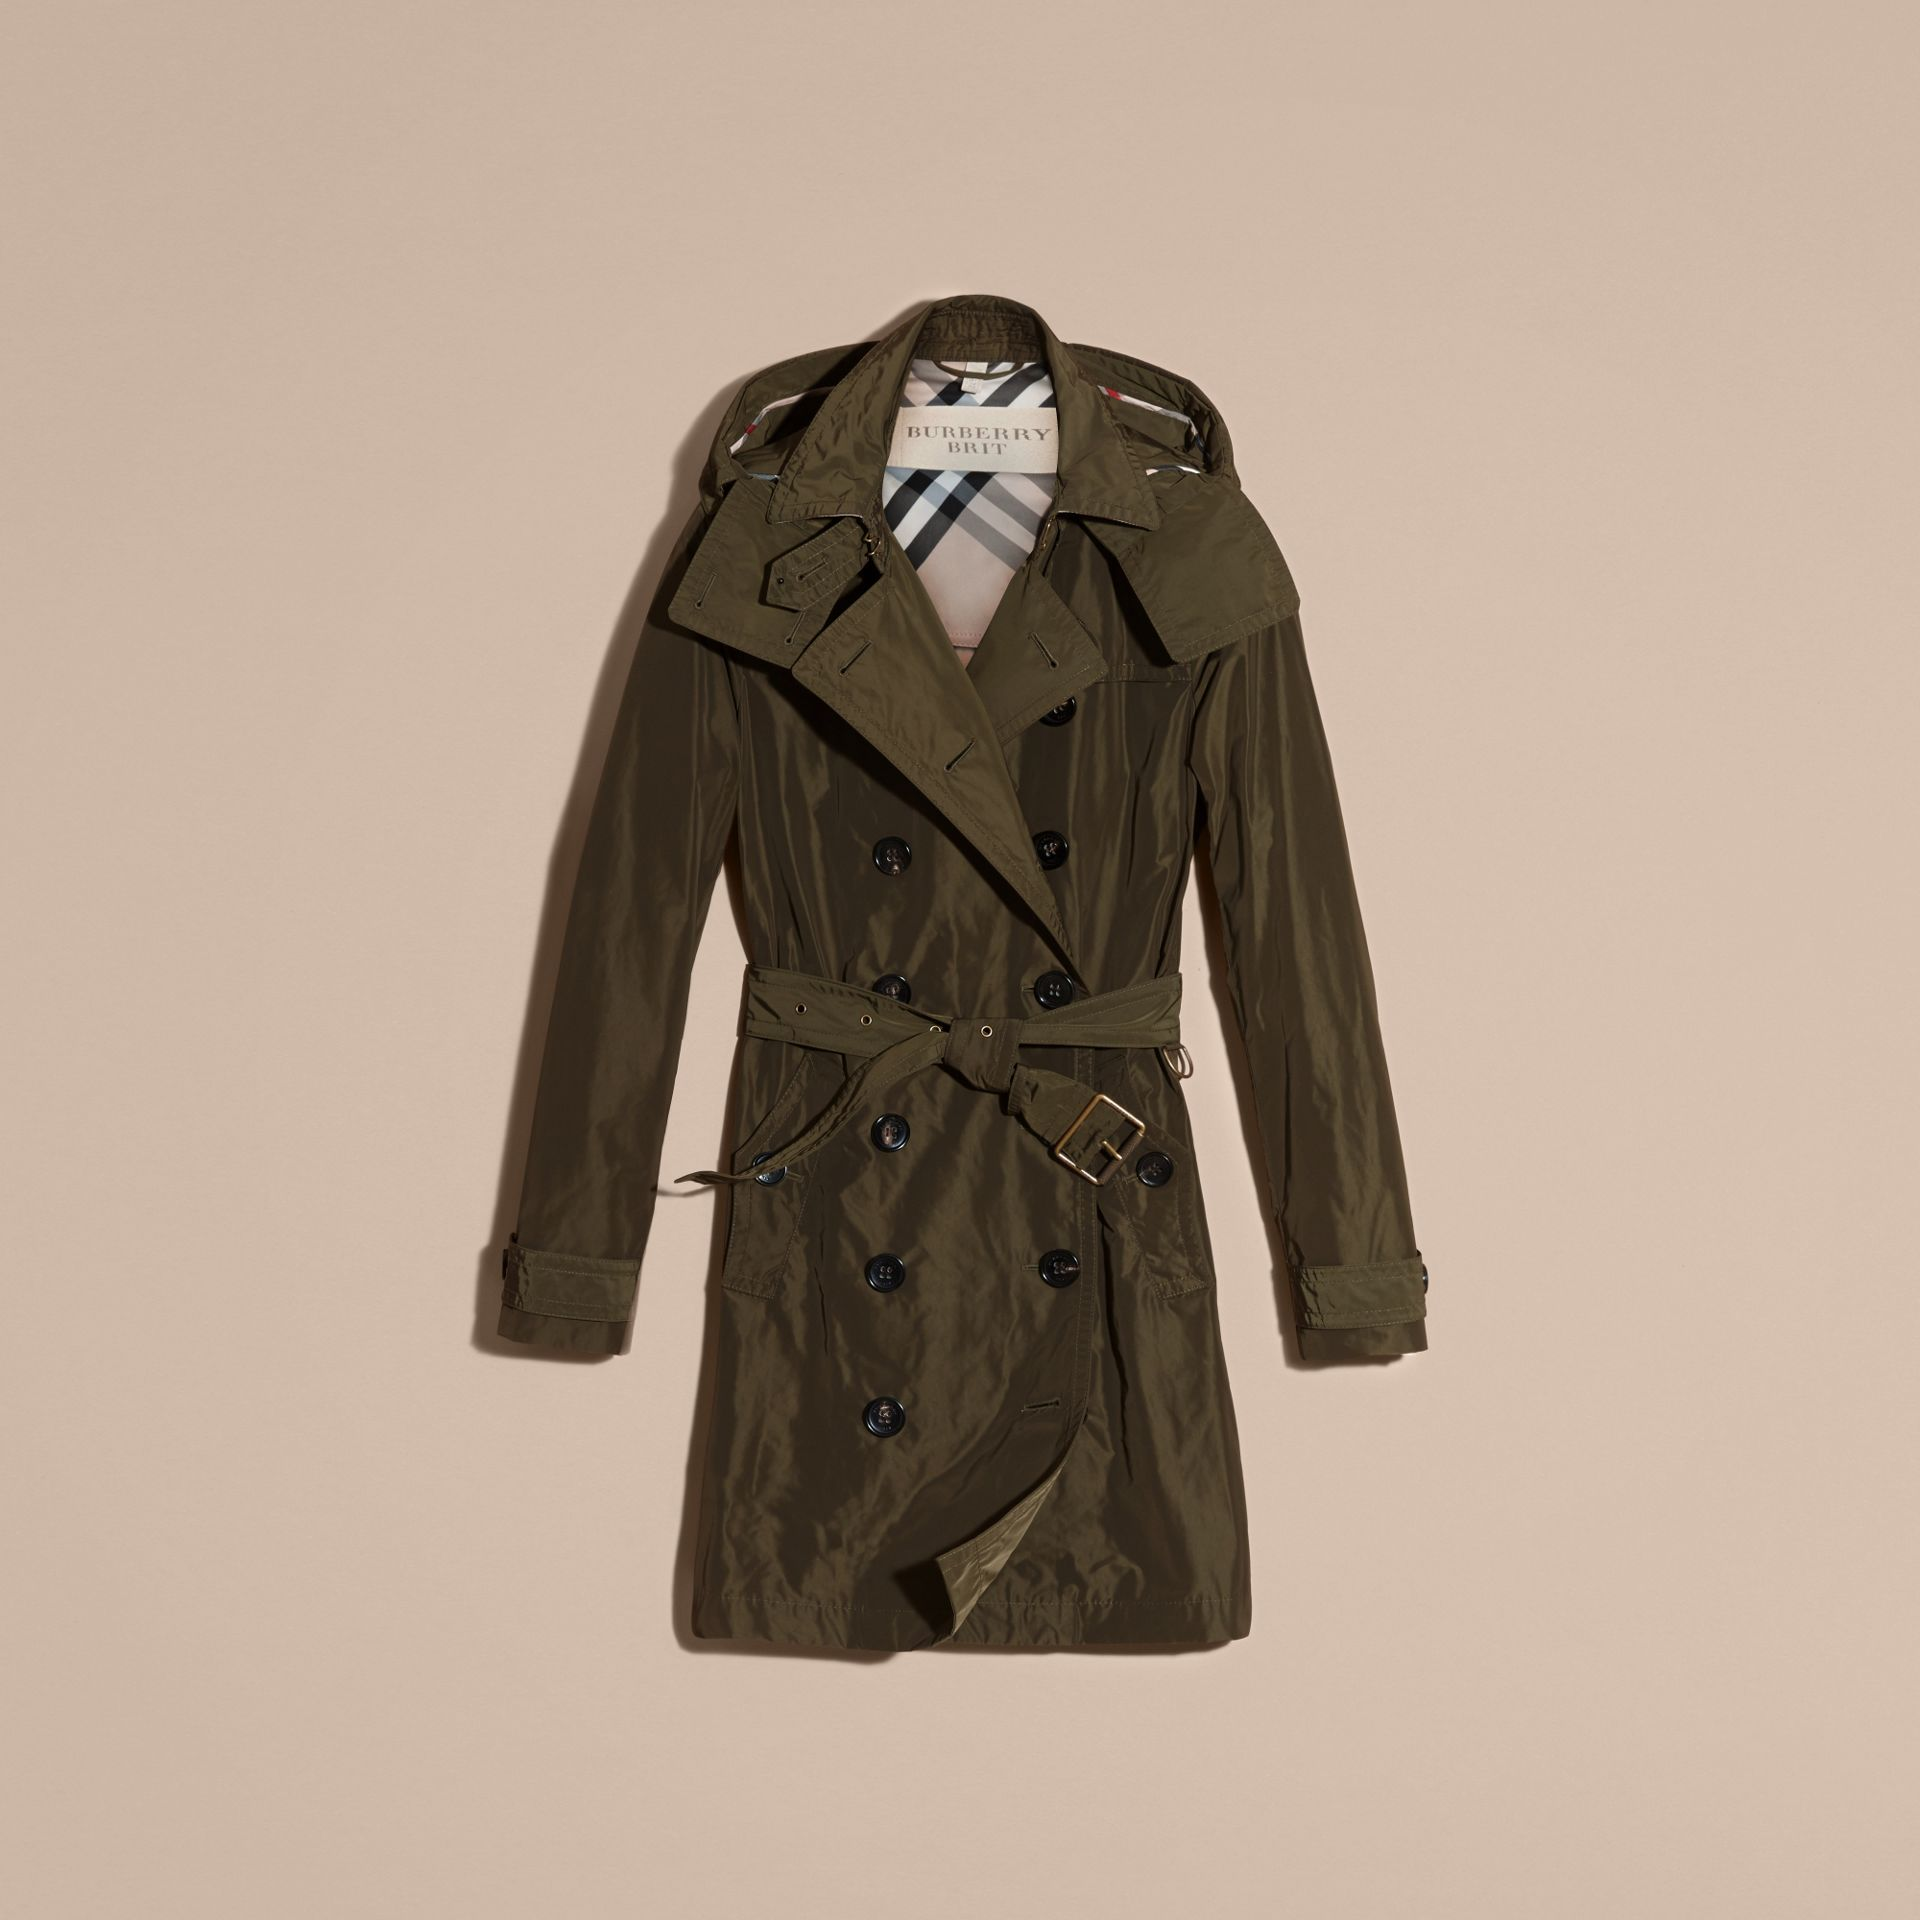 Taffeta Trench Coat with Detachable Hood in Dark Olive - Women | Burberry Canada - gallery image 4